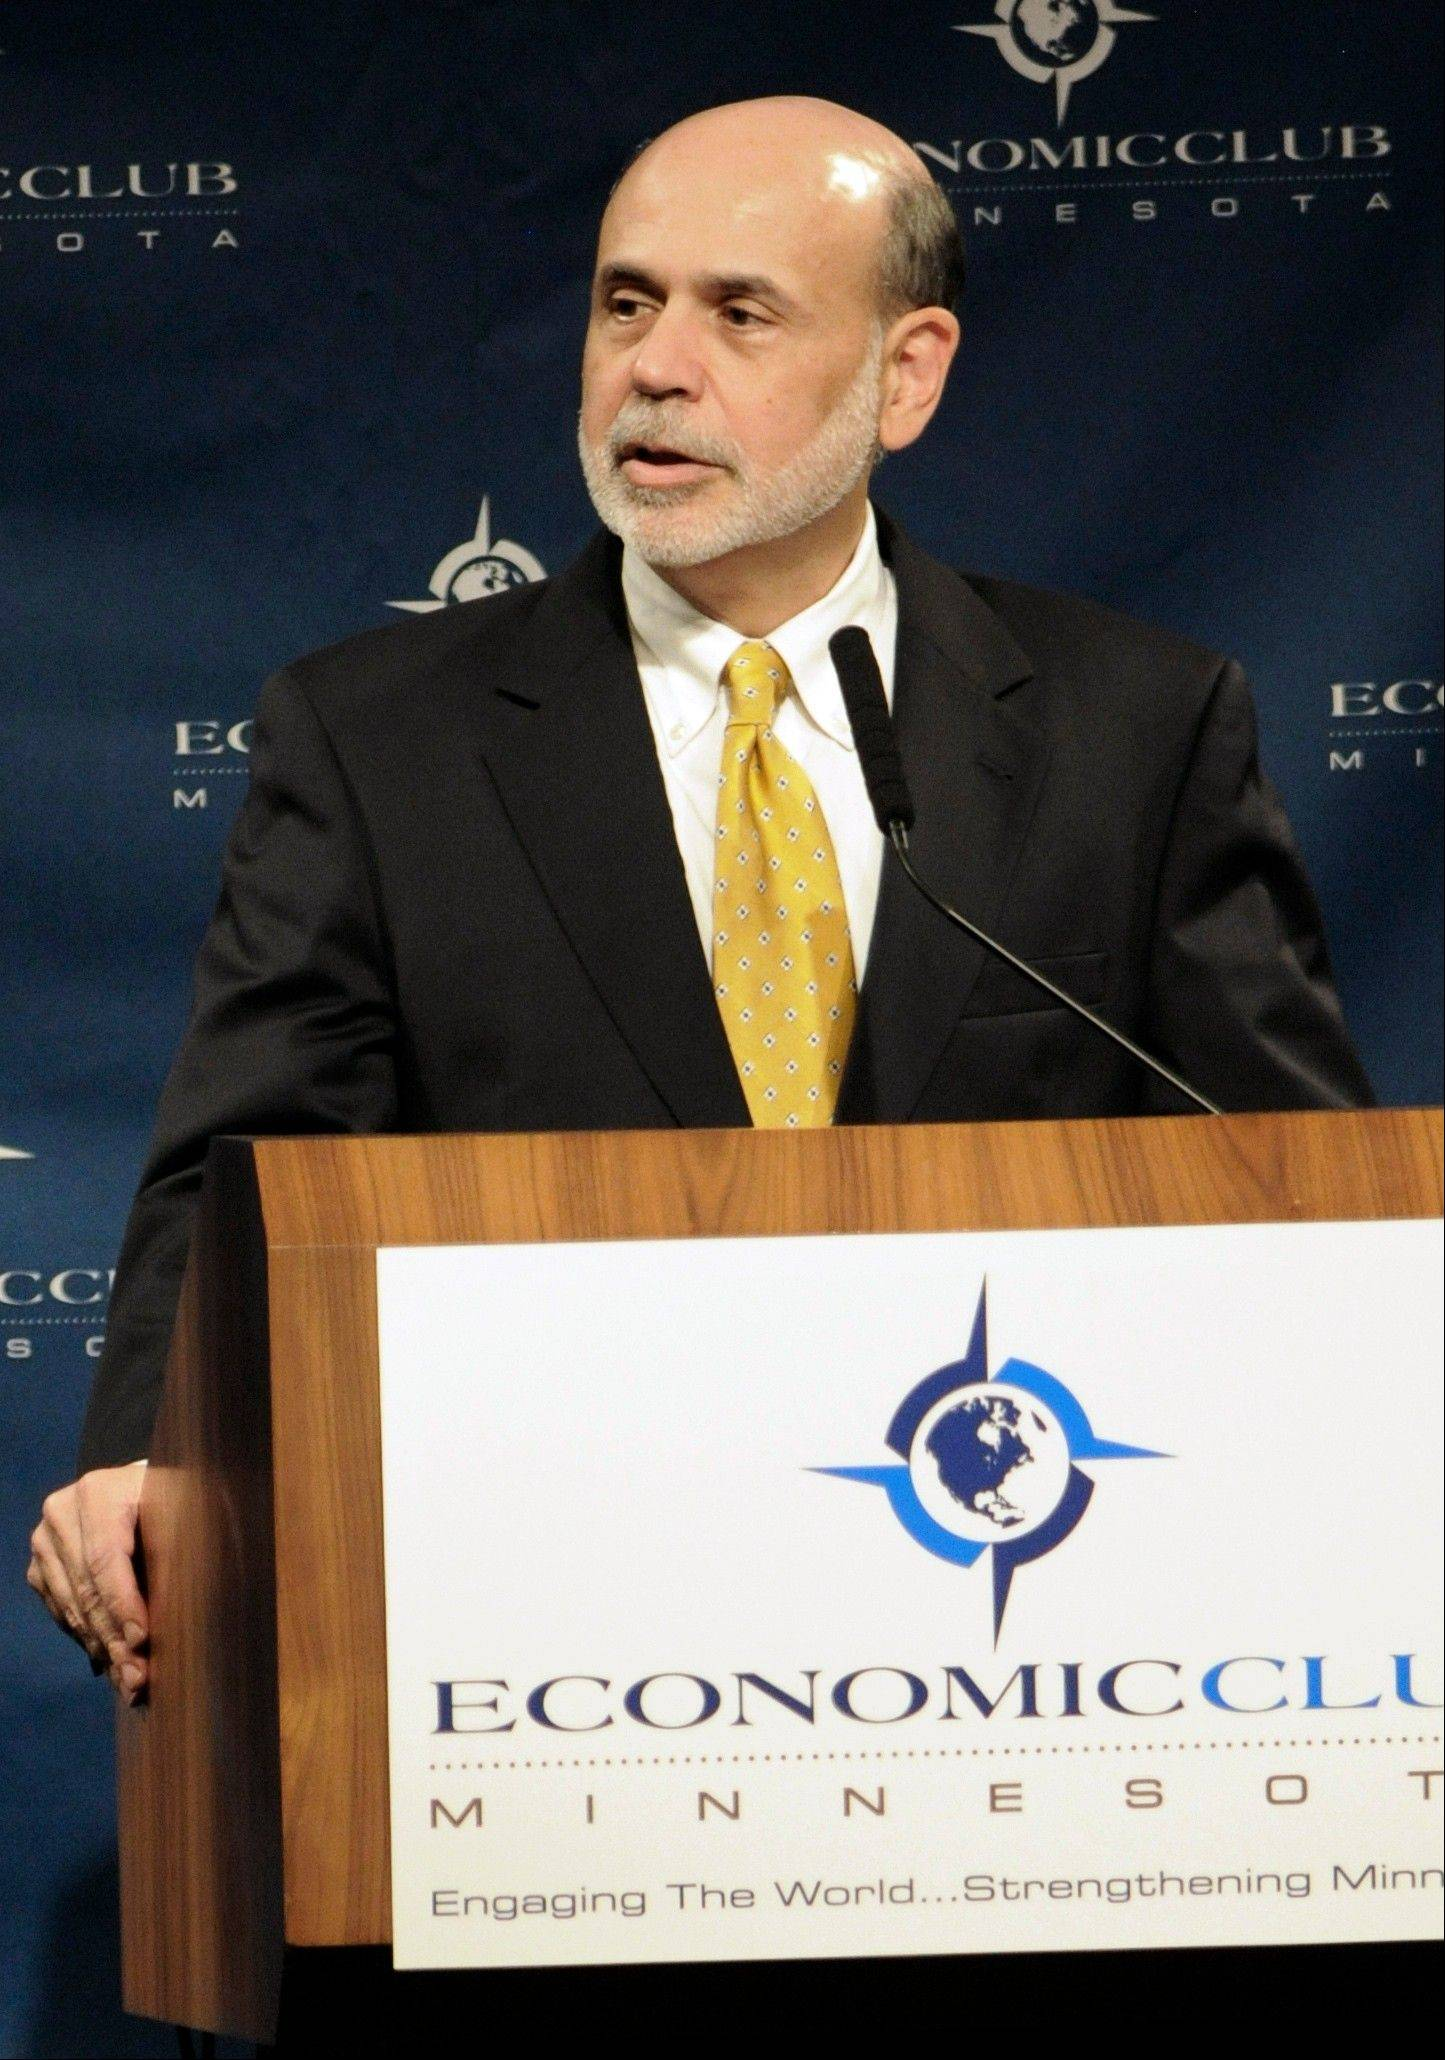 Federal Reserve Chairman Ben Bernanke addresses the Economic Club of Minnesota Thursday in Minneapolis.